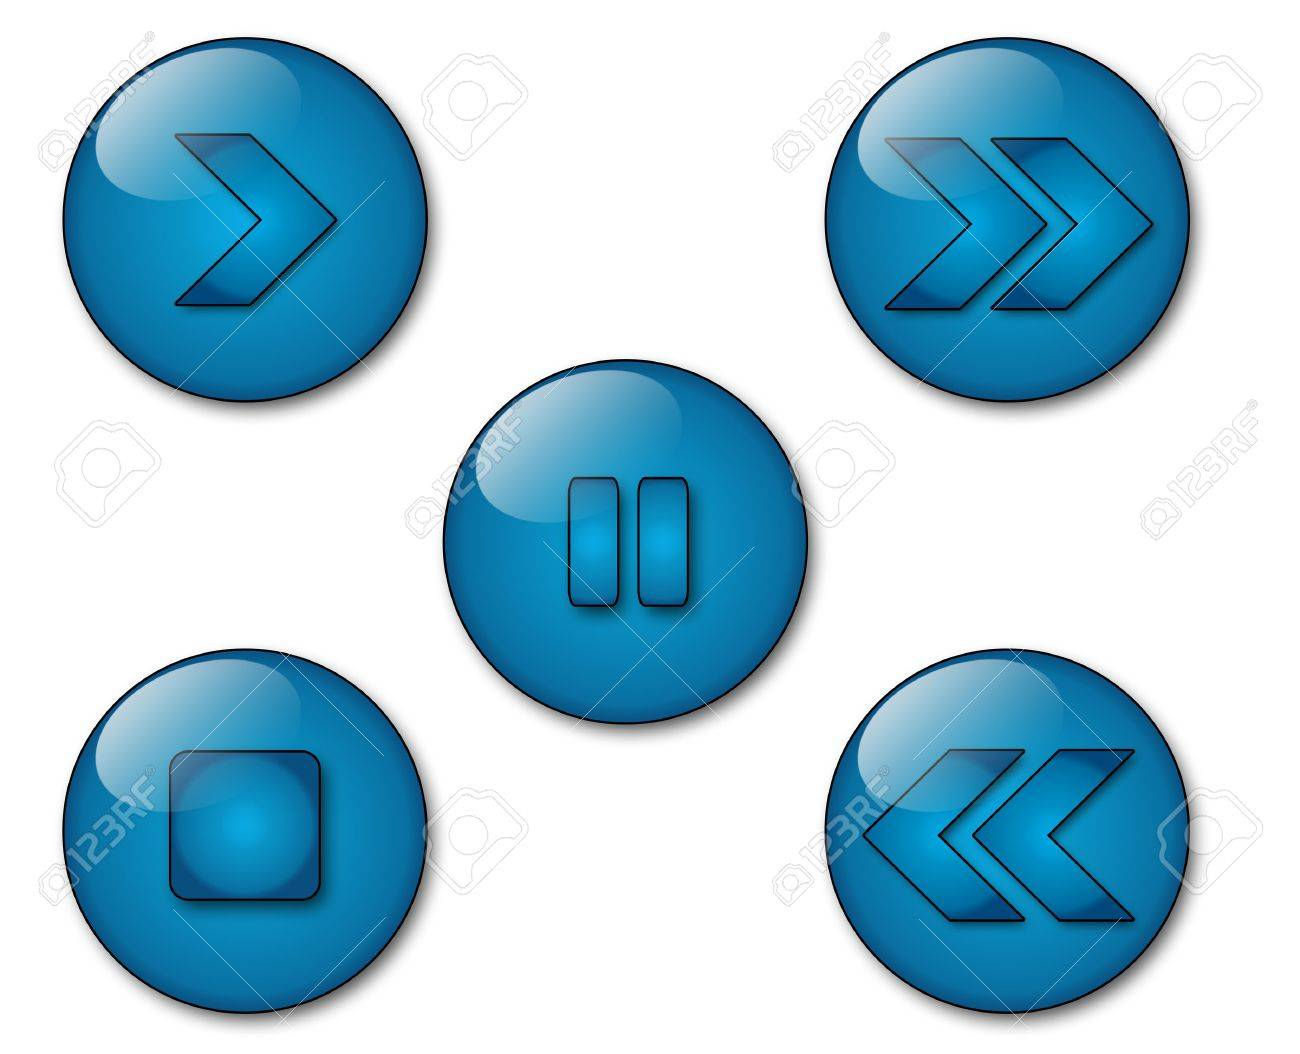 Some aqua style icons with vcr symbols stock photo, picture and.